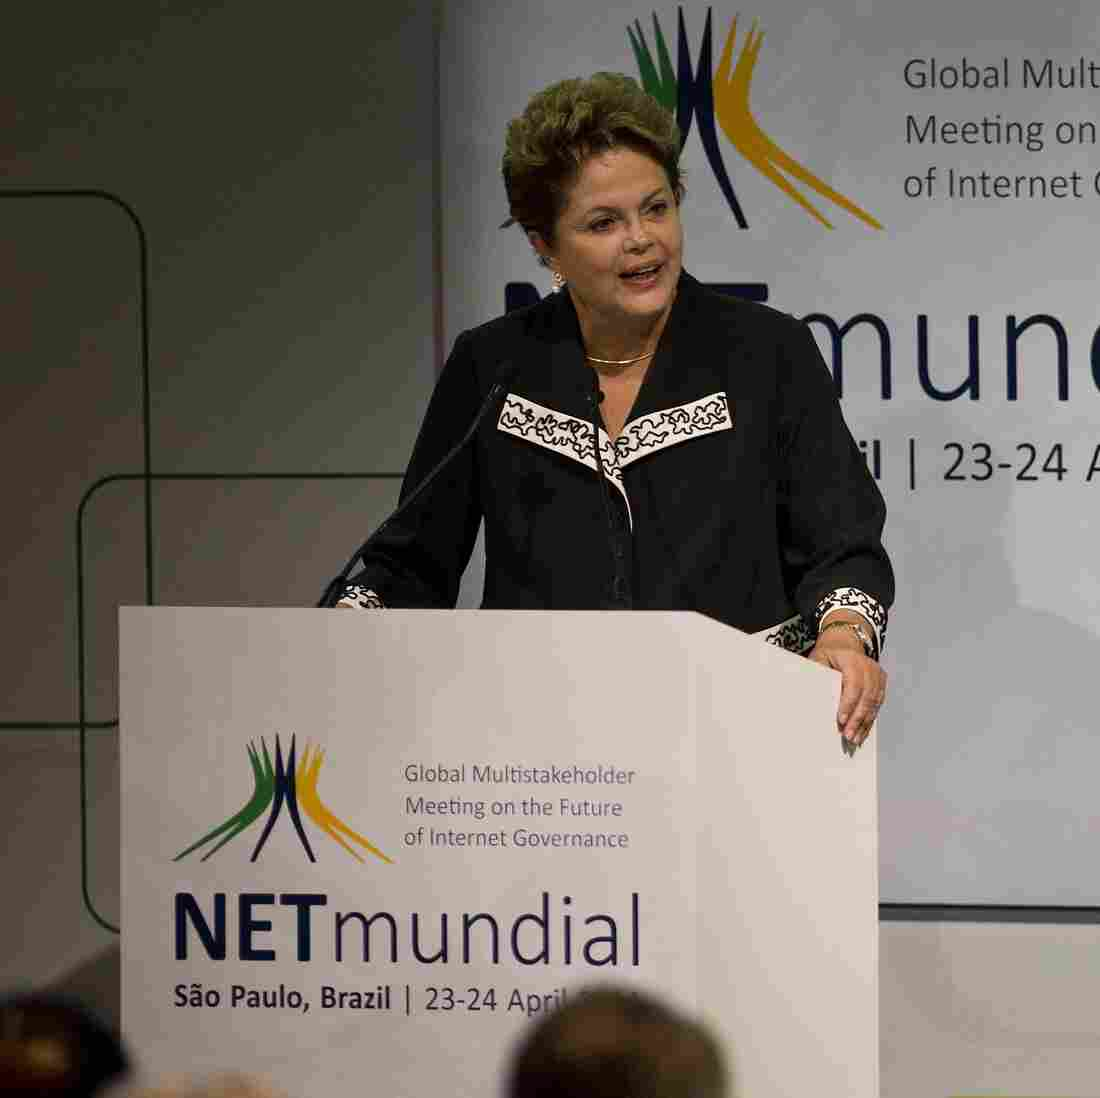 """Brazilian President Dilma Rousseff delivers a speech during the opening ceremony of the """"NETmundial Global Multistakeholder Meeting on the Future of Internet Governance"""", on Wednesday in Sao Paulo, Brazil."""